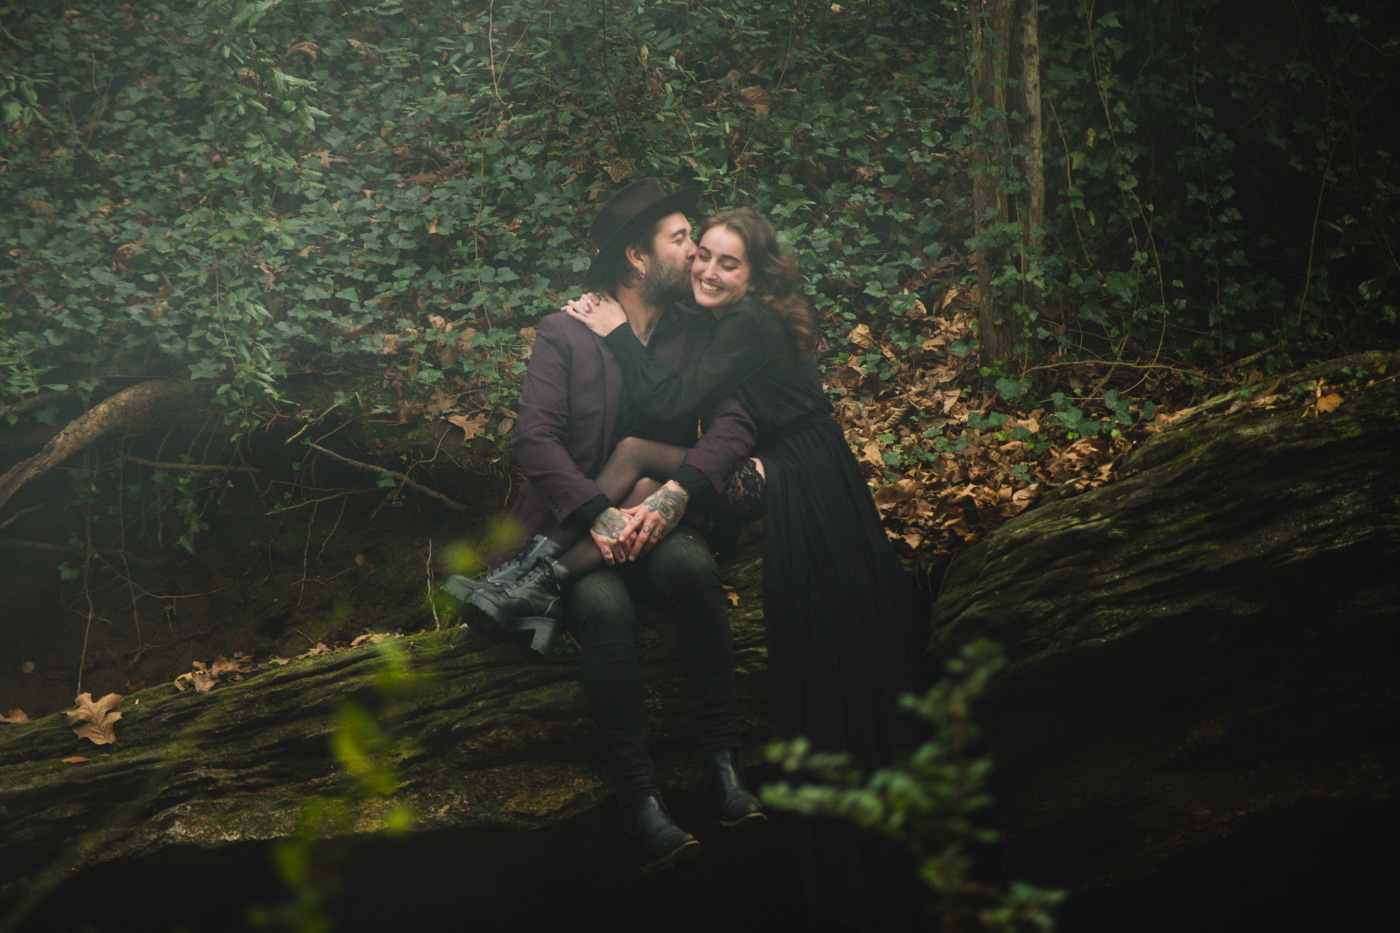 witchy portrait session in couple's backyard in Atlanta